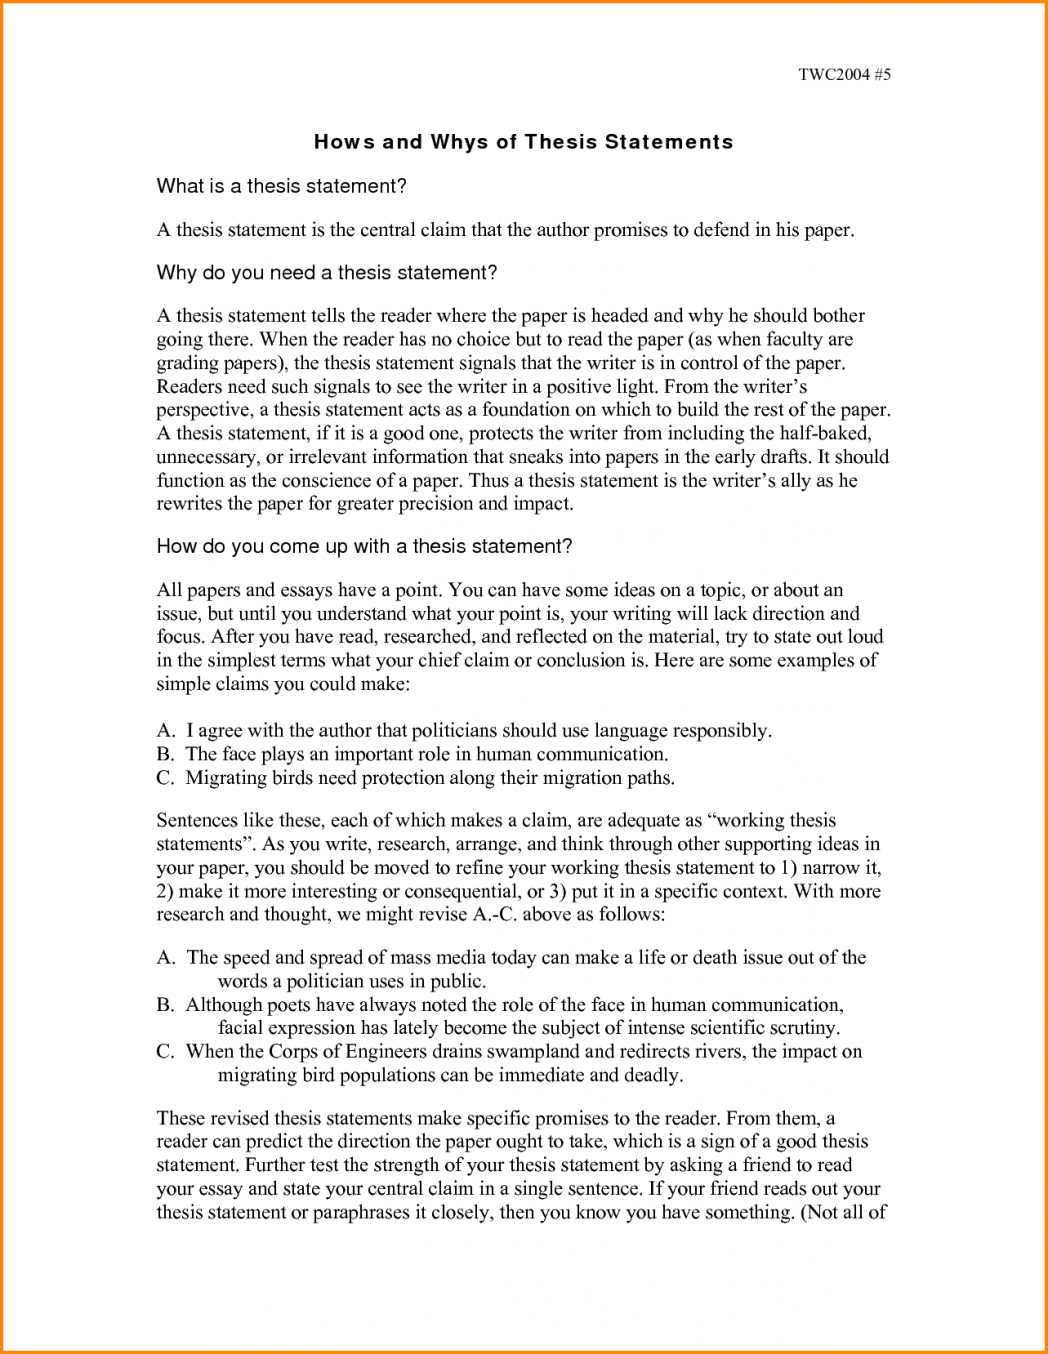 027 The Descriptive Essay Essays Aboutson Profile How To Write Sample Thesis Statement Examples For You Admire Writing An Describing In Third Pdf 1048x1354 Example On Staggering A Person Famous Start Full